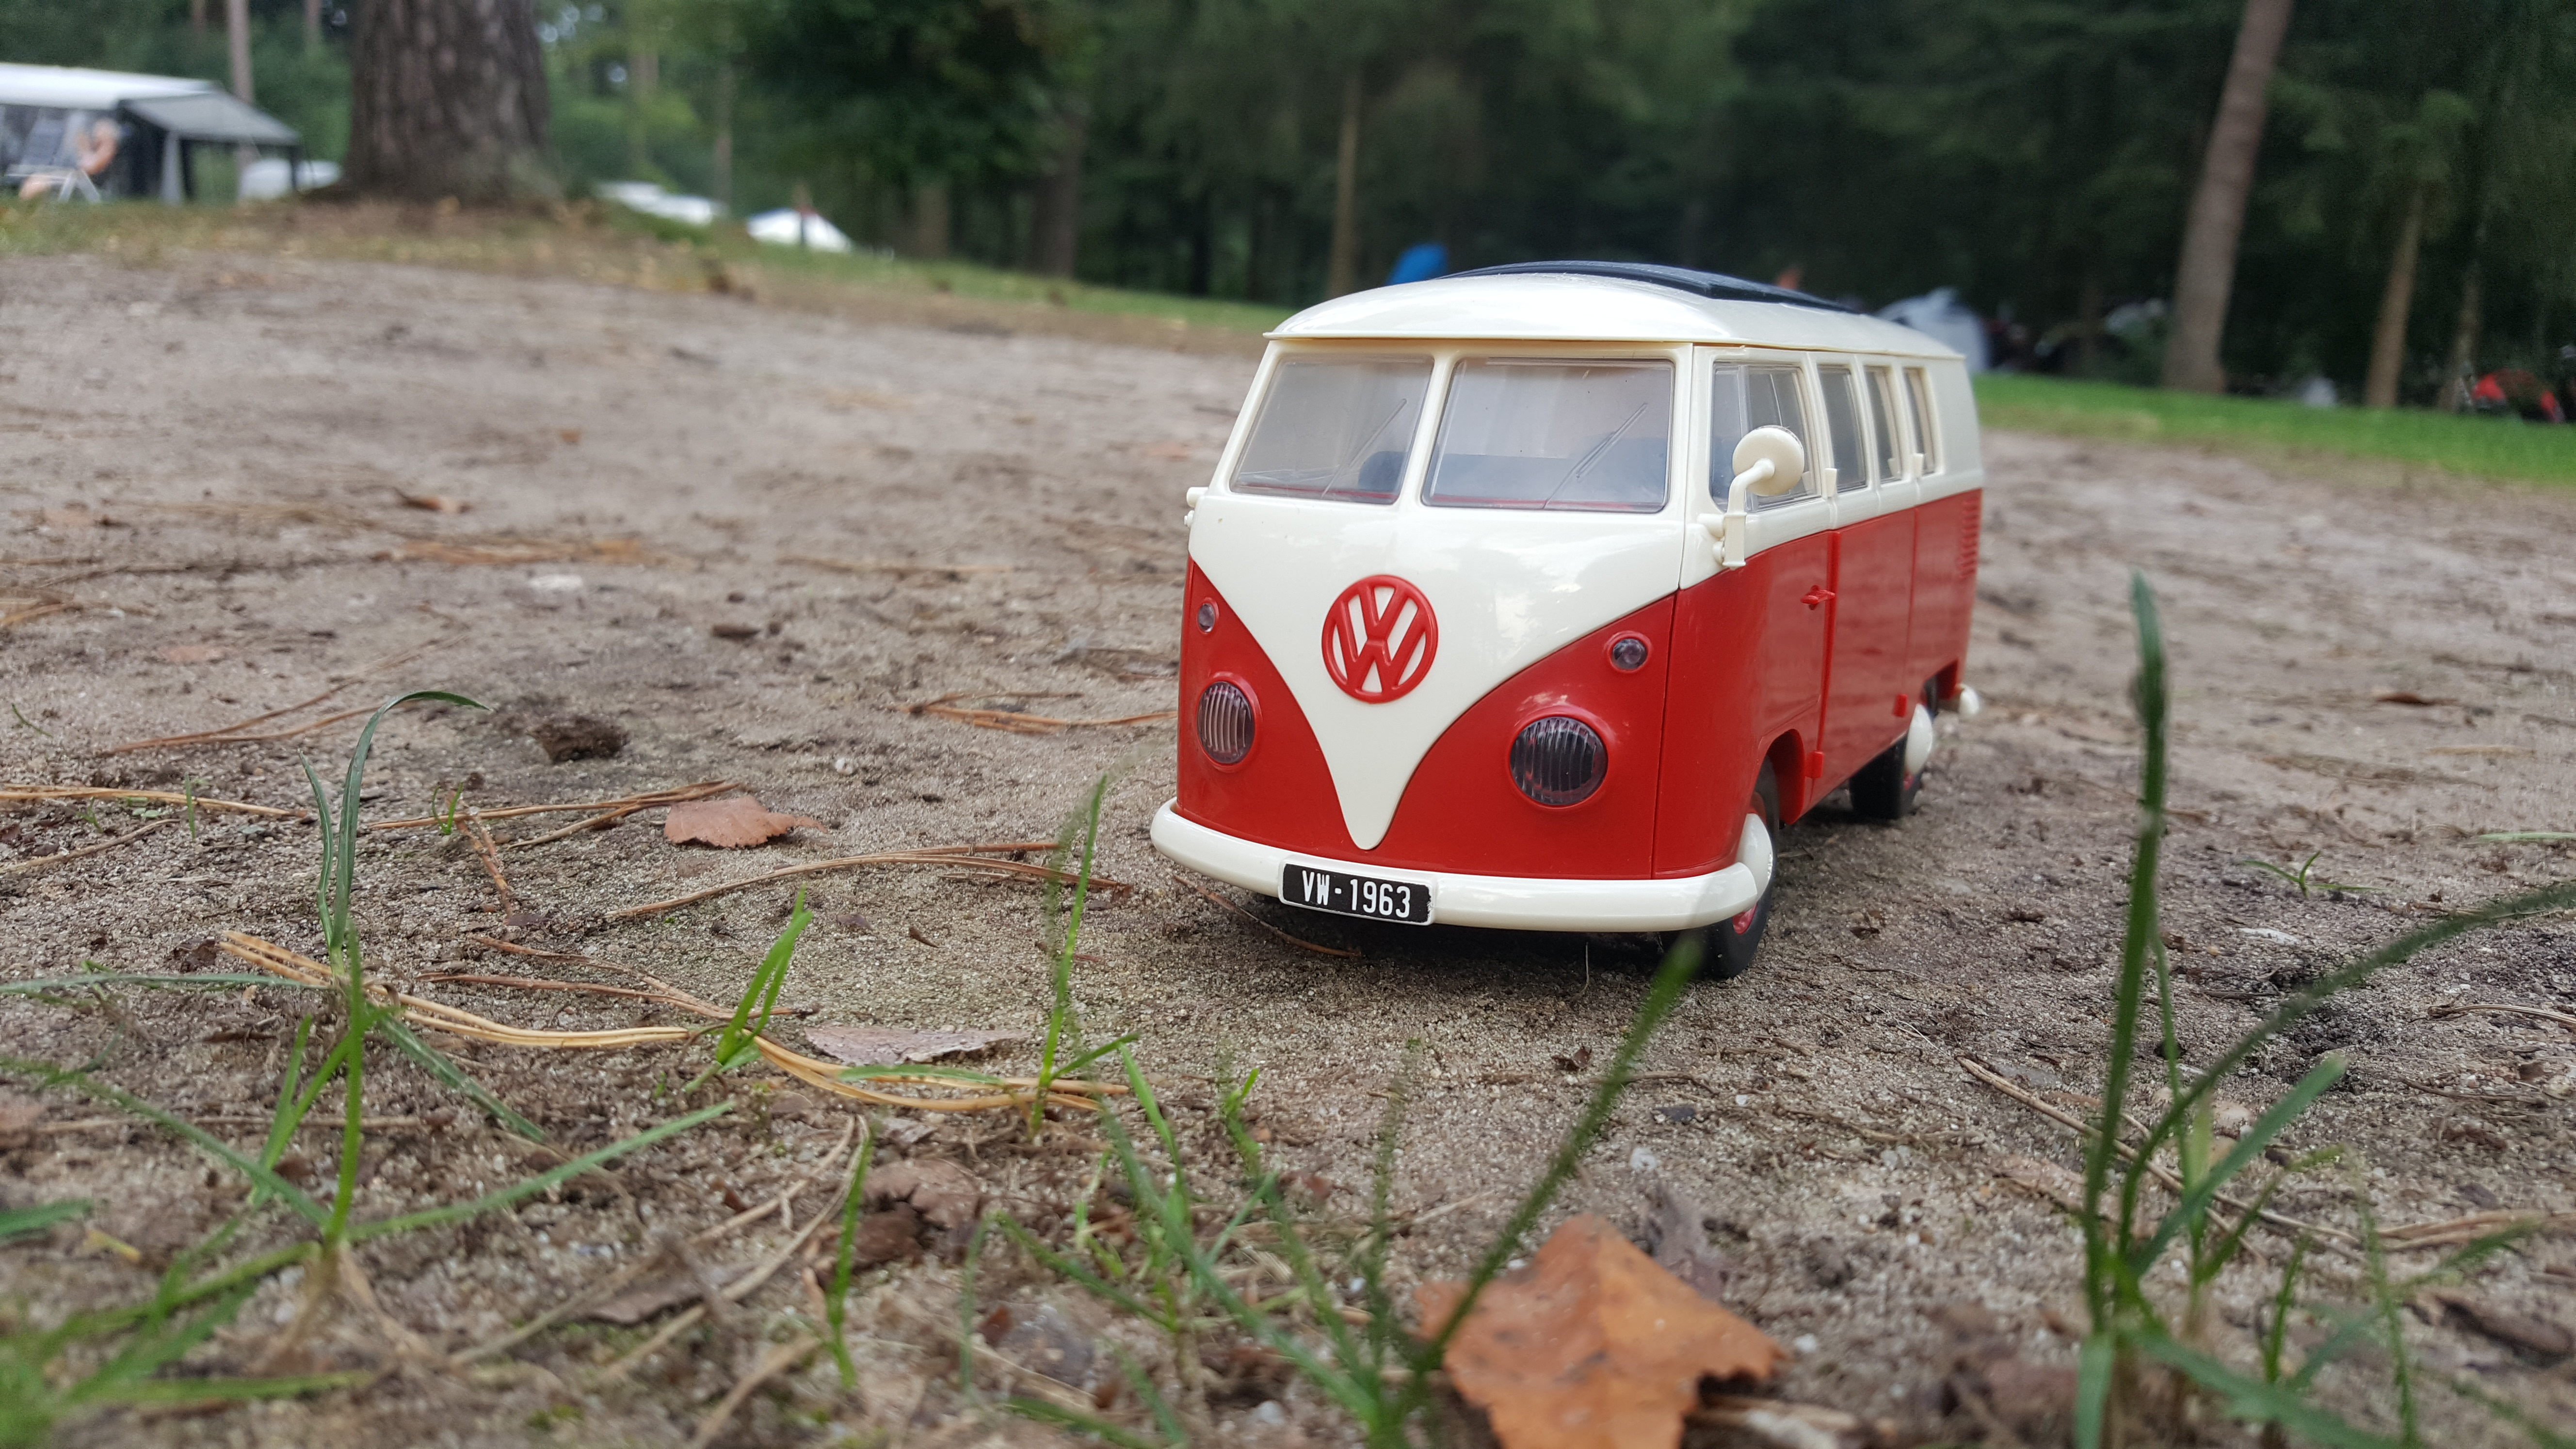 Airfix quick build campervan